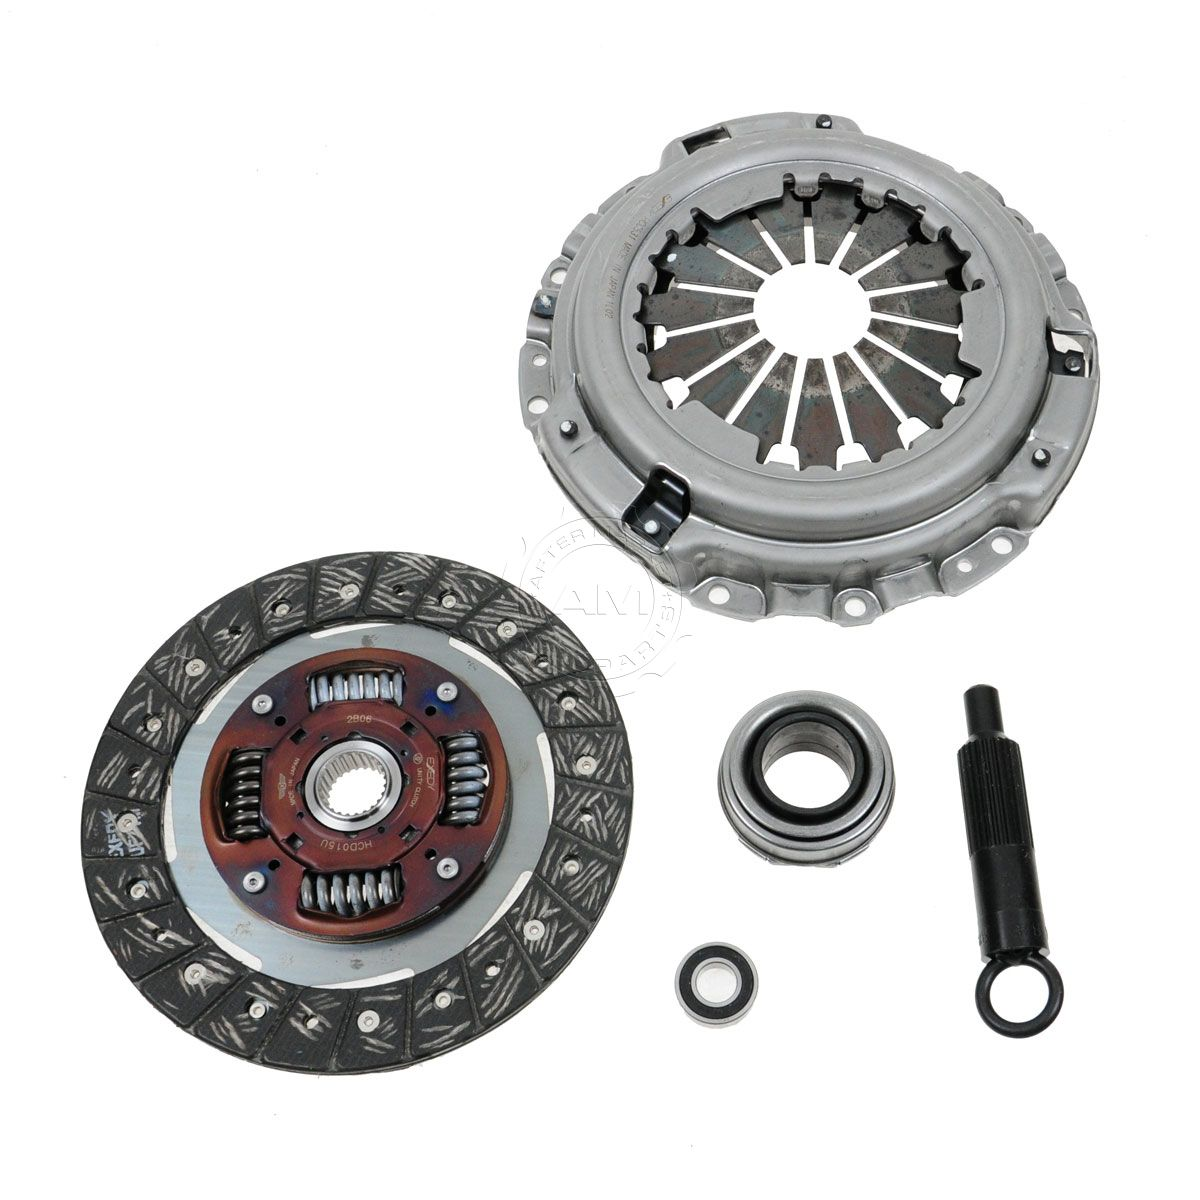 EXEDY 08028 Clutch Disk Set Kit Complete For 92-93 Acura